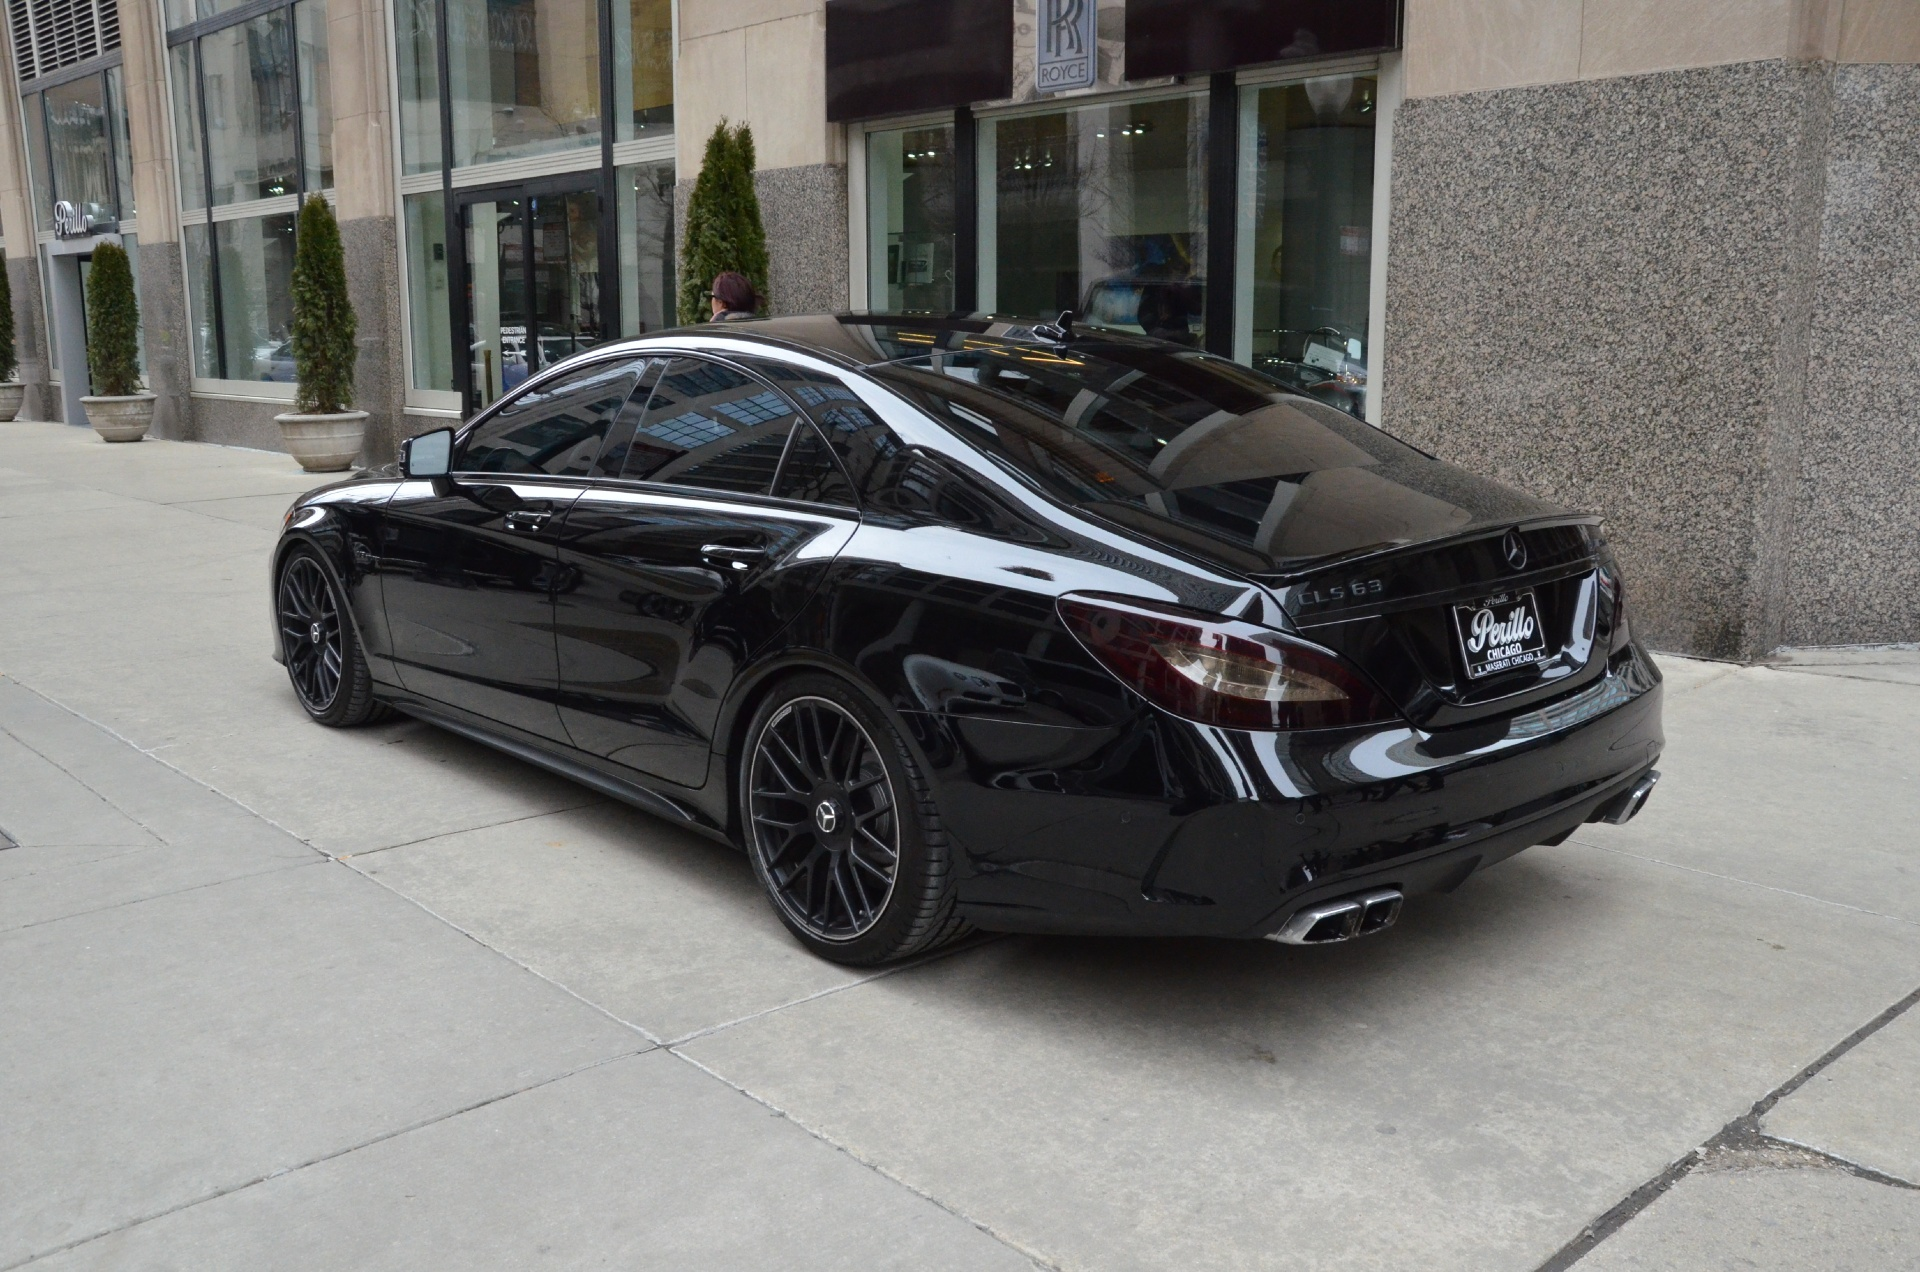 2015 mercedes benz cls class cls63 amg s model stock r193b for sale near chicago il il. Black Bedroom Furniture Sets. Home Design Ideas